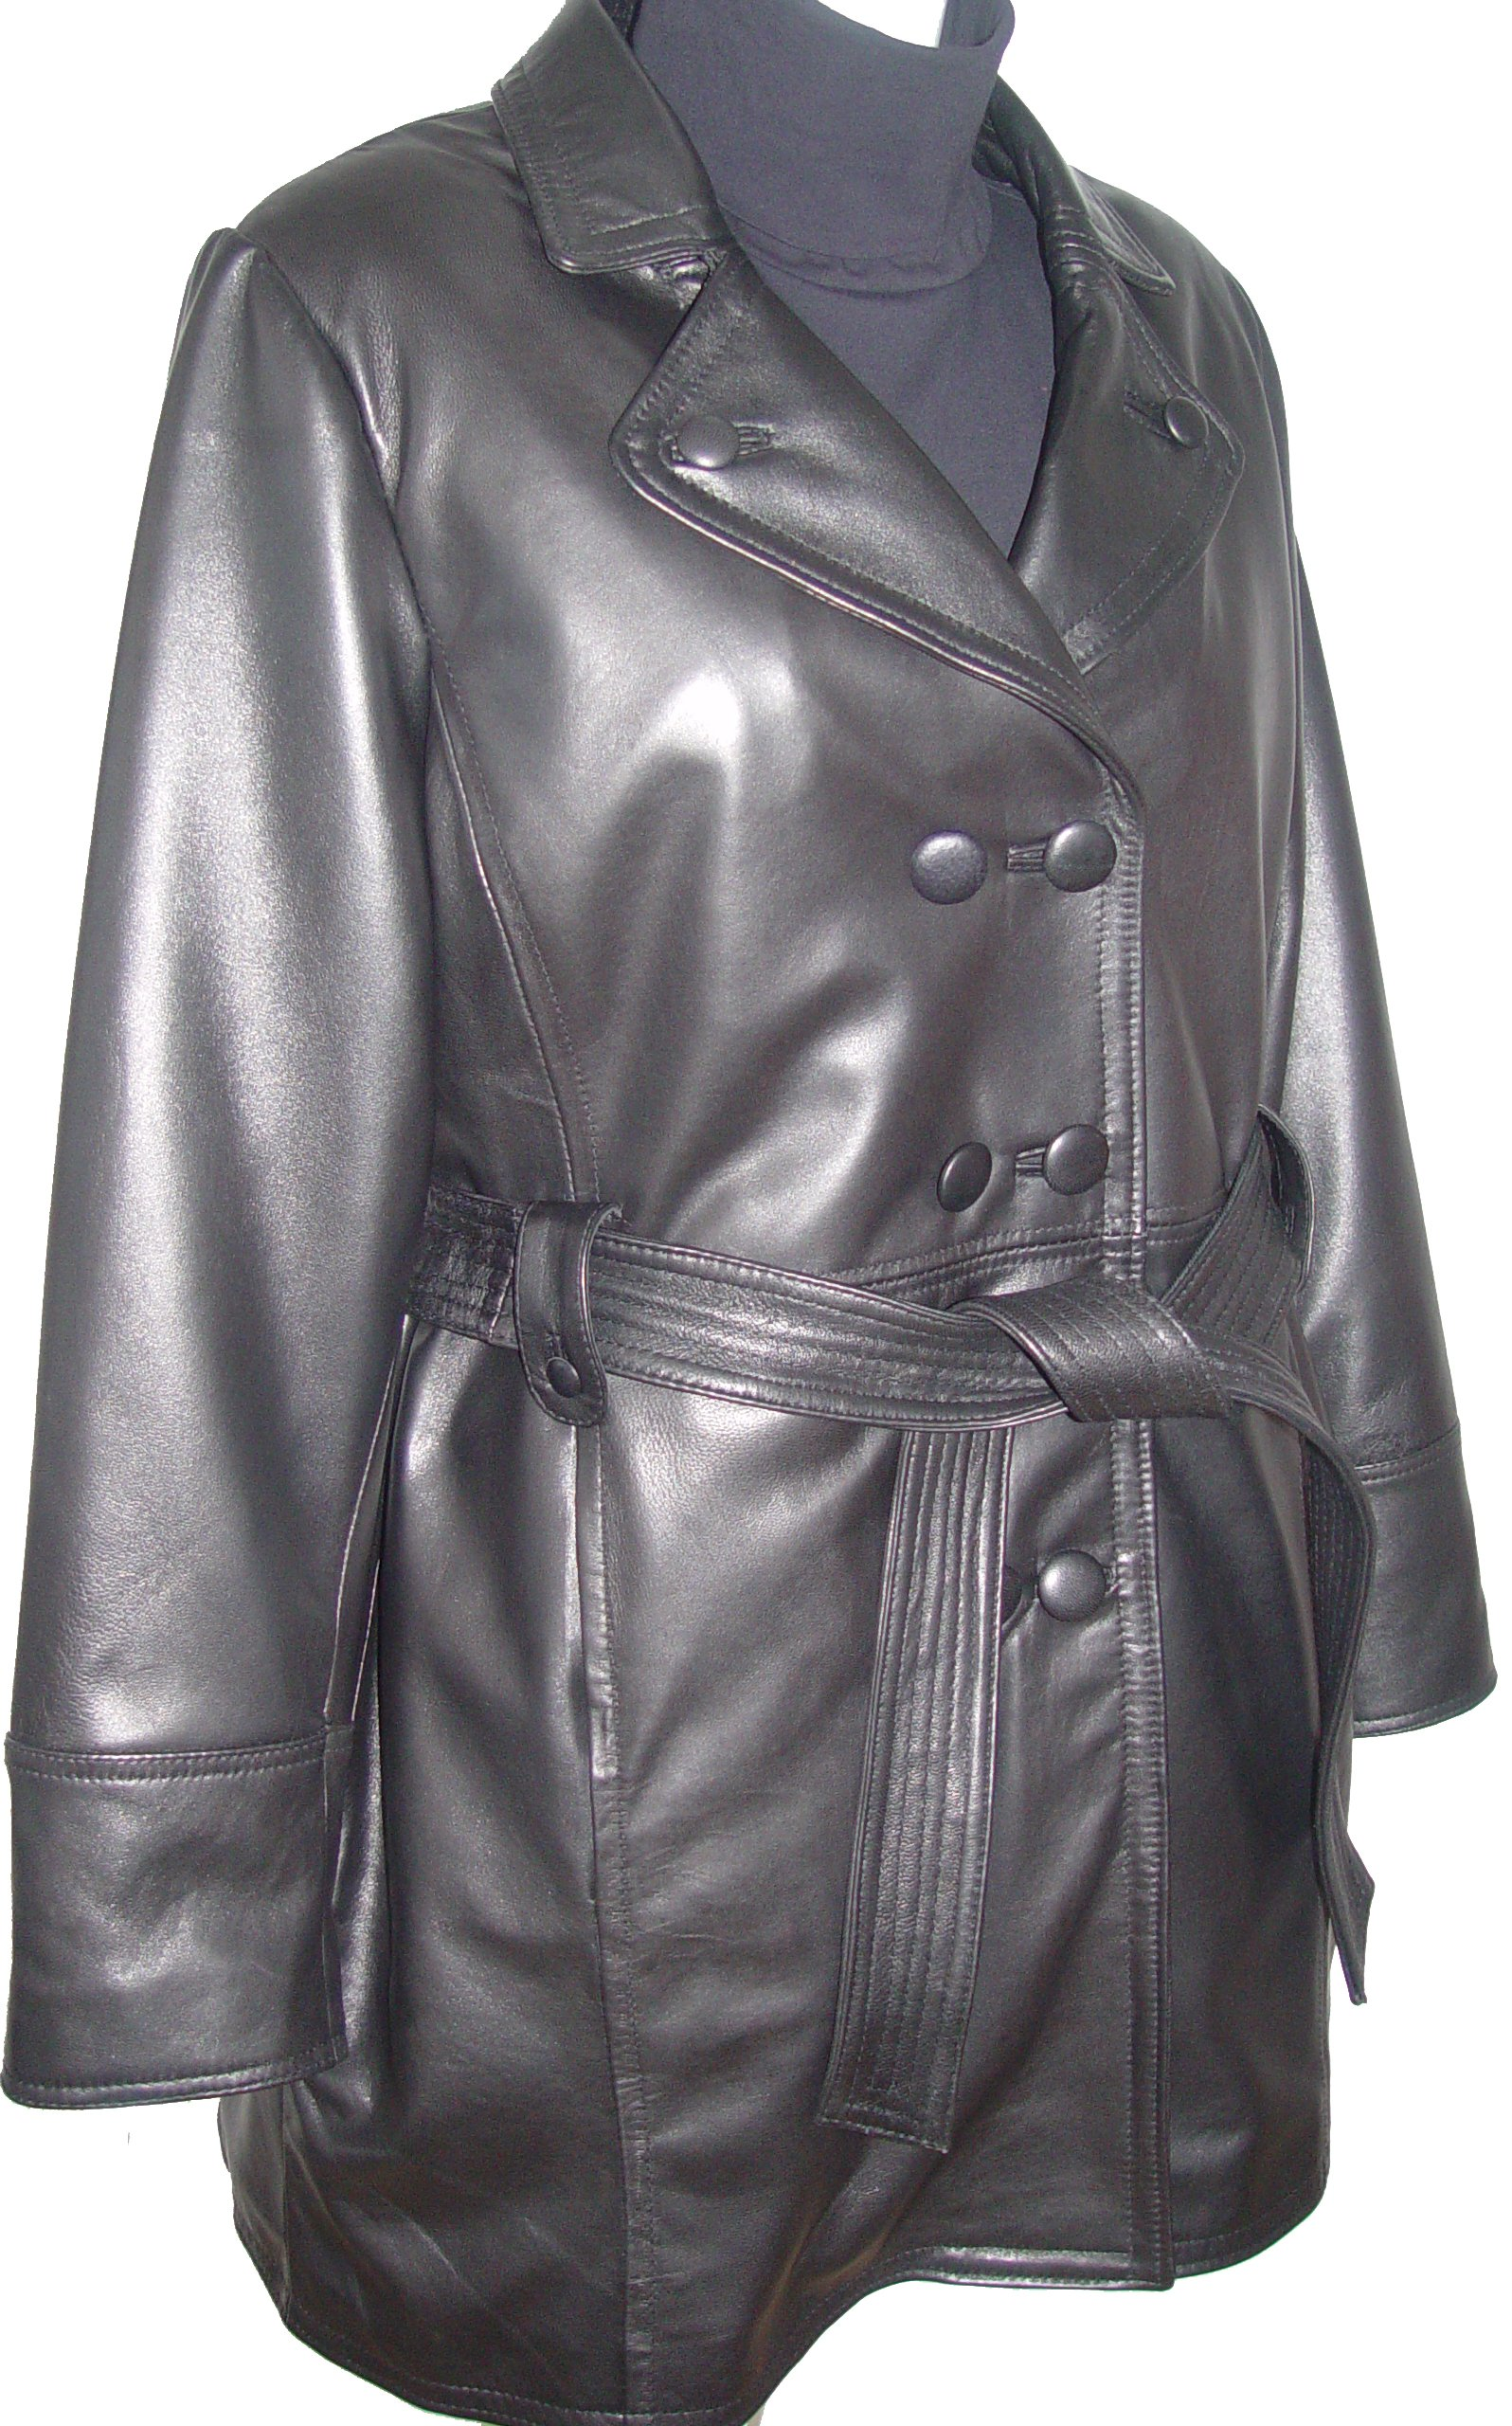 Paccilo 5006 Classic Leather Trench Coats Womens Business Clothing Soft Lamb by Paccilo (Image #8)